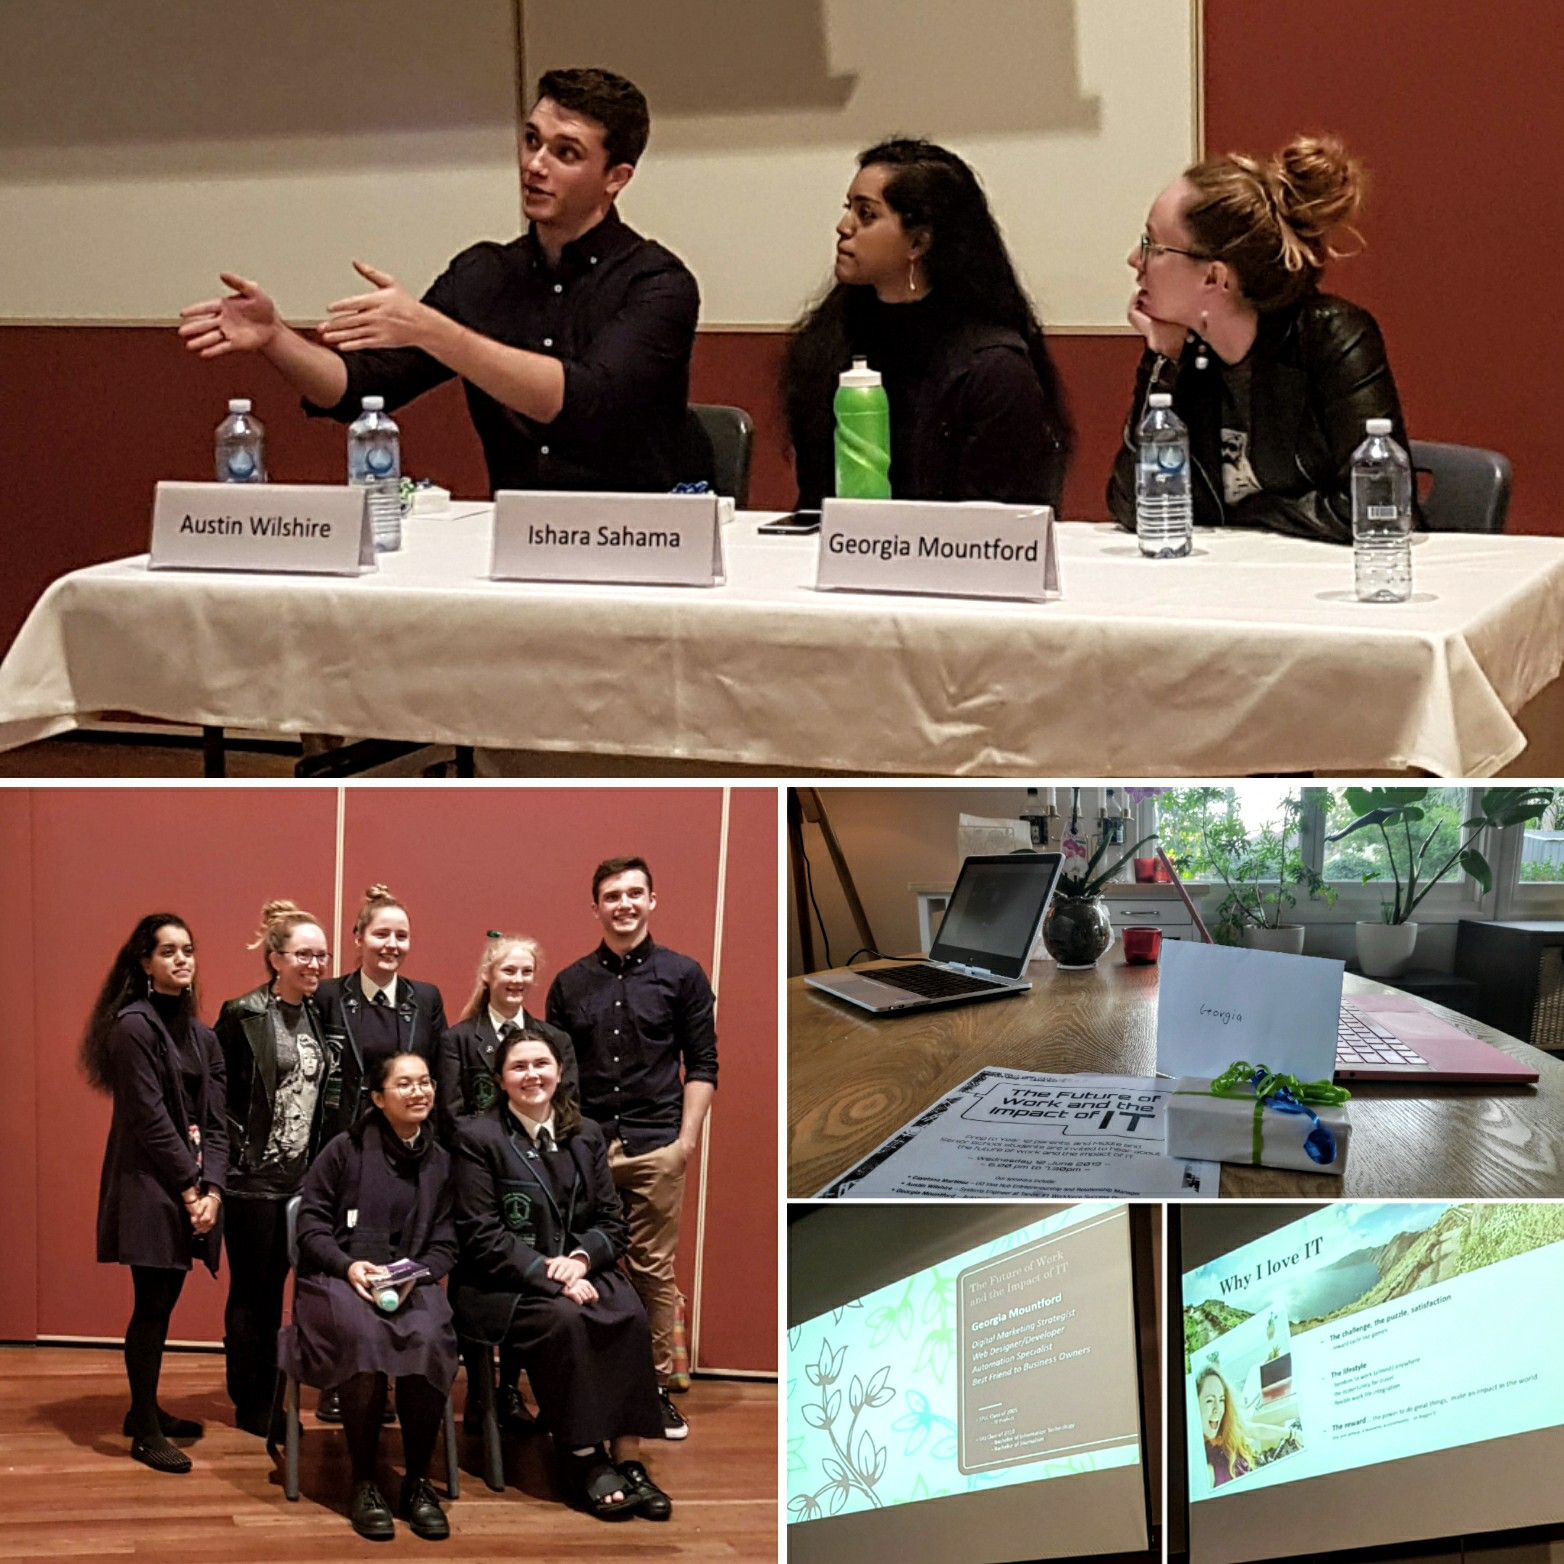 Collage of images - Georgia sitting on a panel of speakers, presenting her topic, posing with students, receiving gift from host